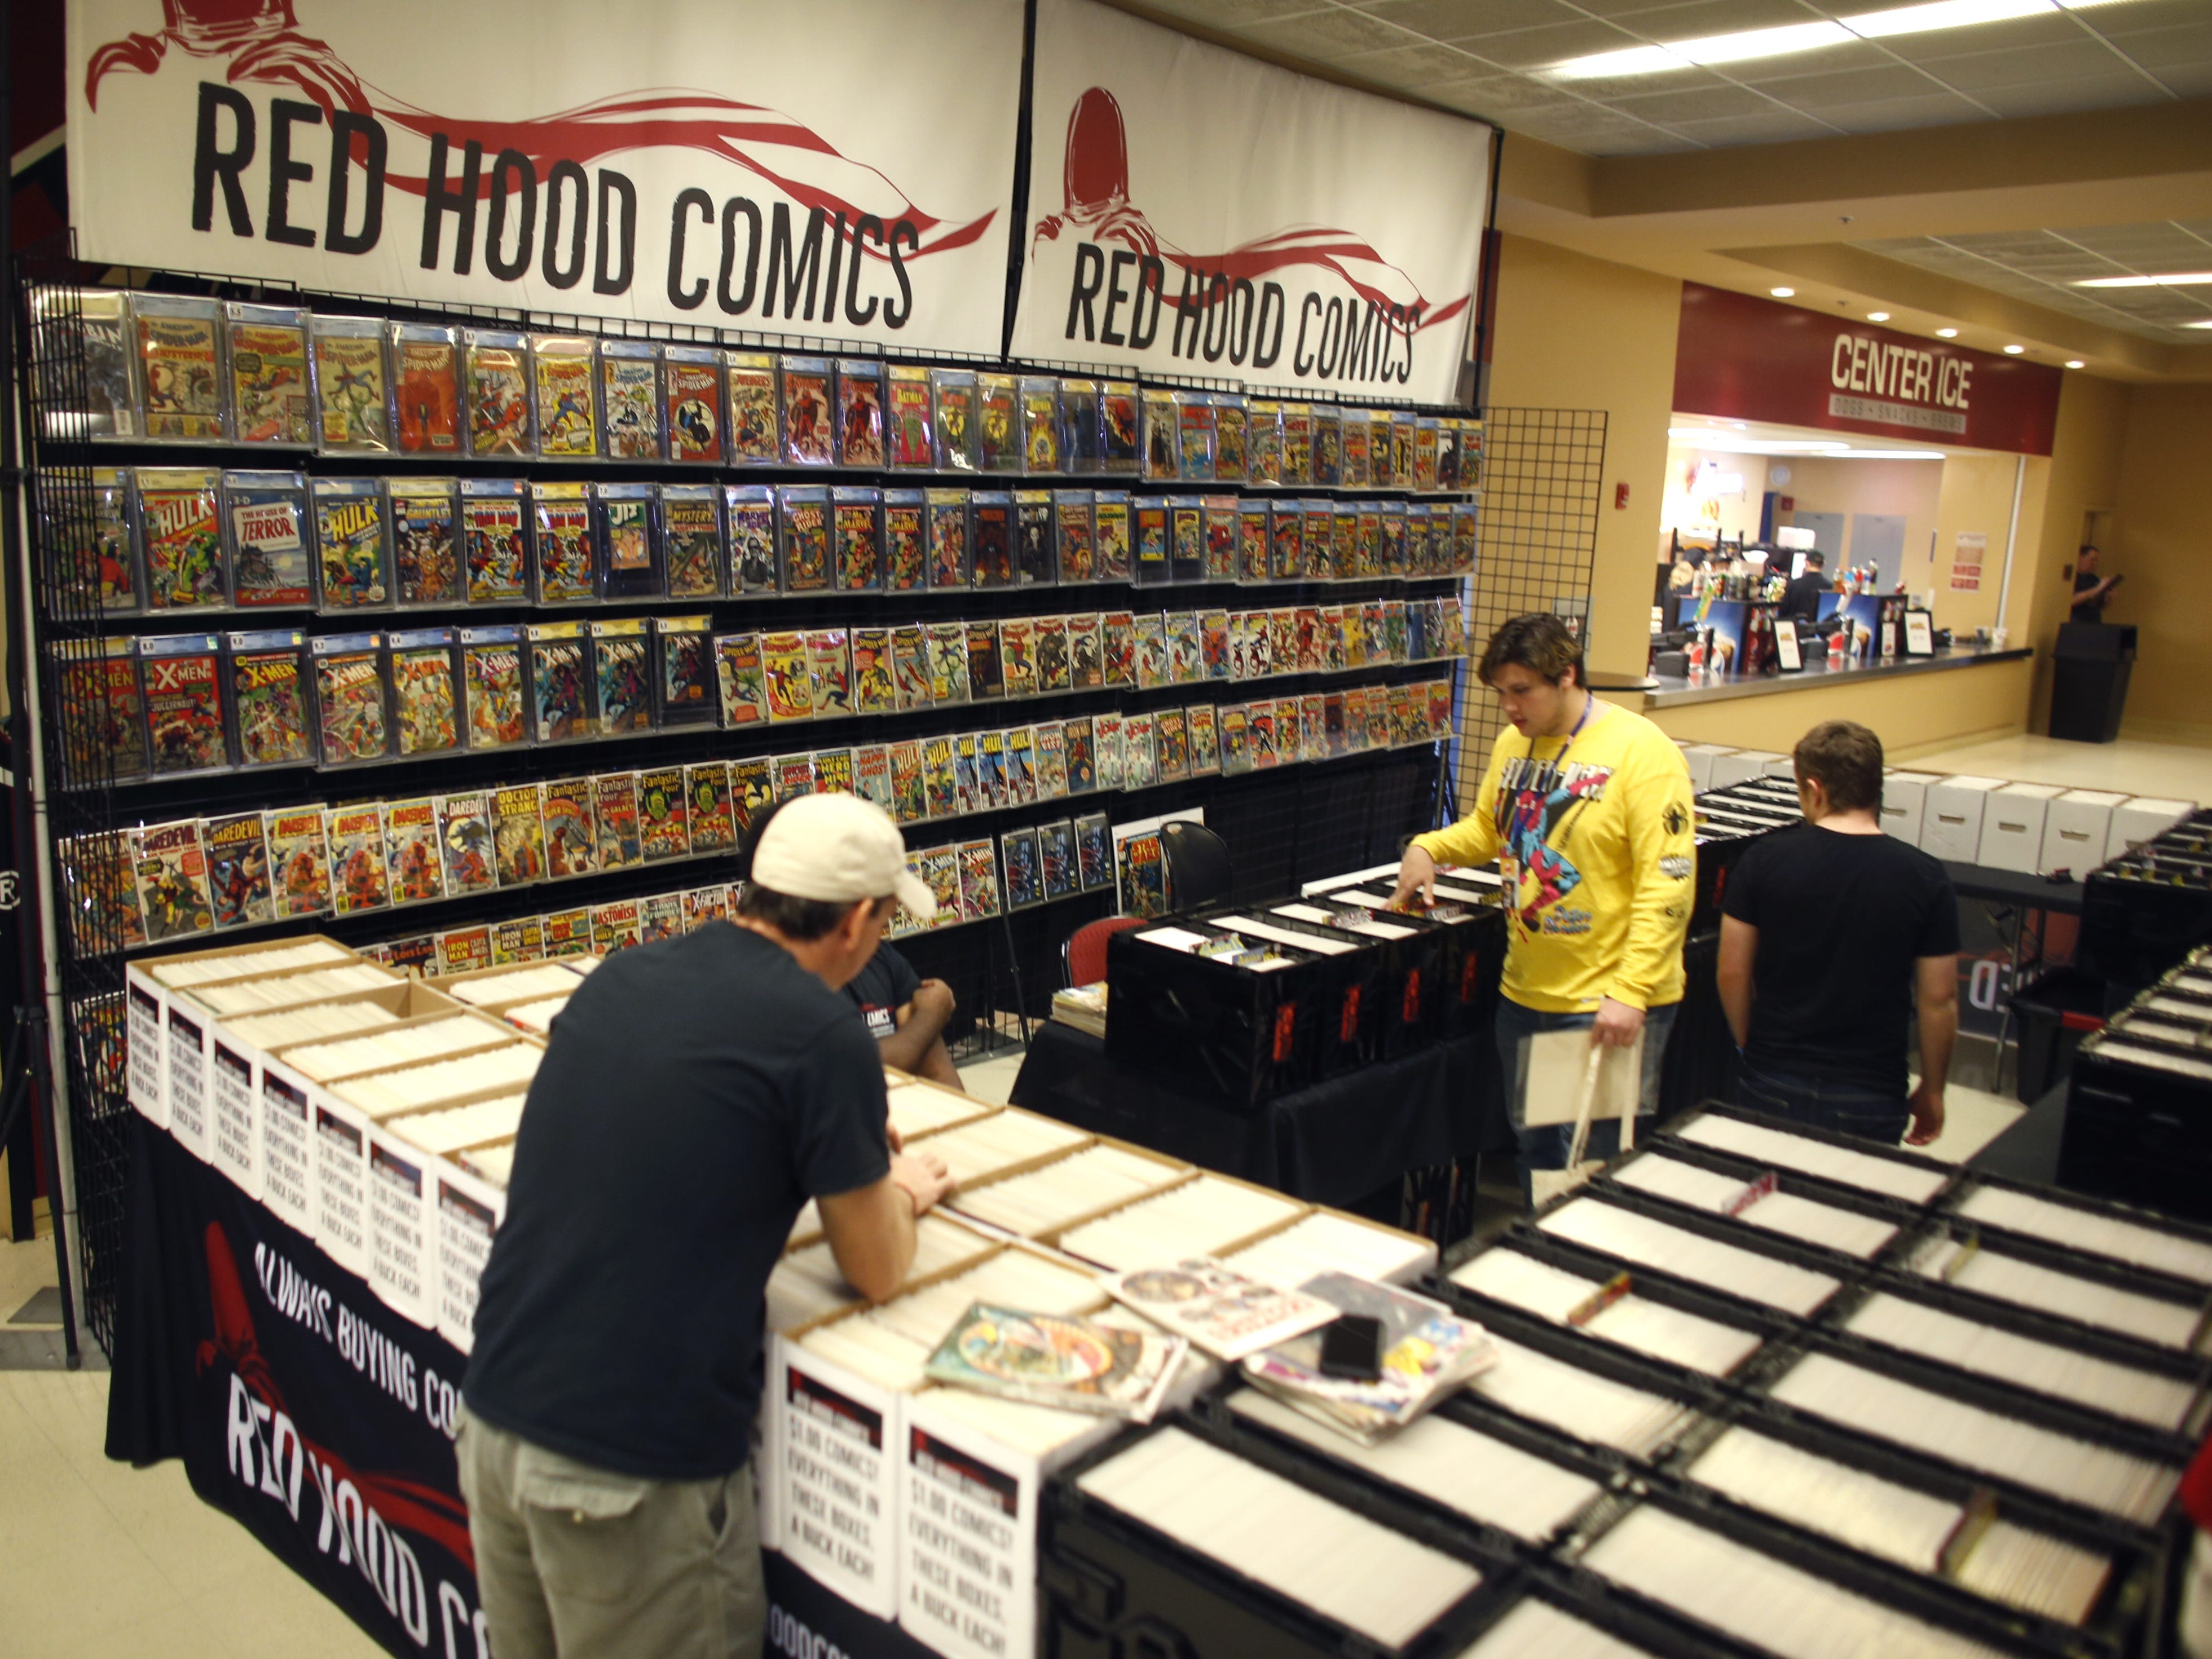 Customers browse the Red Hood Comics booth on opening day of Ace Comic Con 2019 at Gila River Arena in Glendale, Ariz. on Jan. 11, 2019.